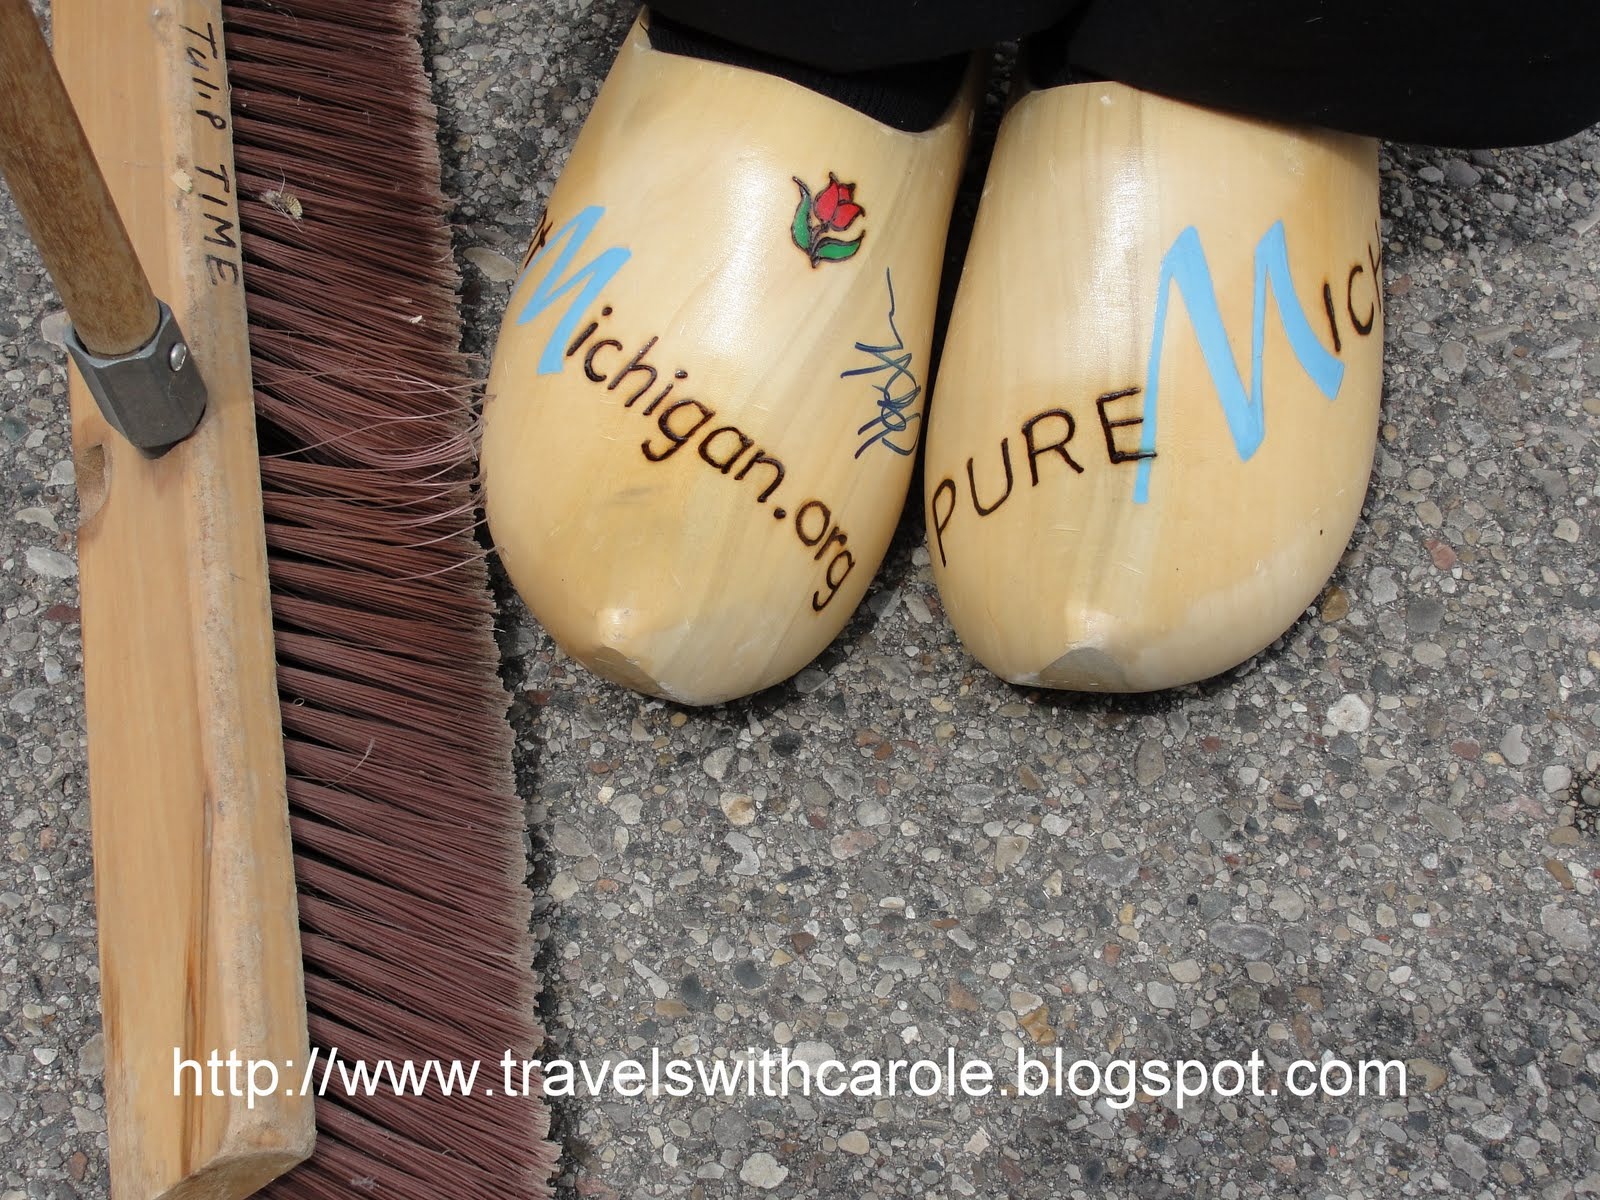 Travels With Carole: Holland, Michigan: DeKlomp Wooden Shoe